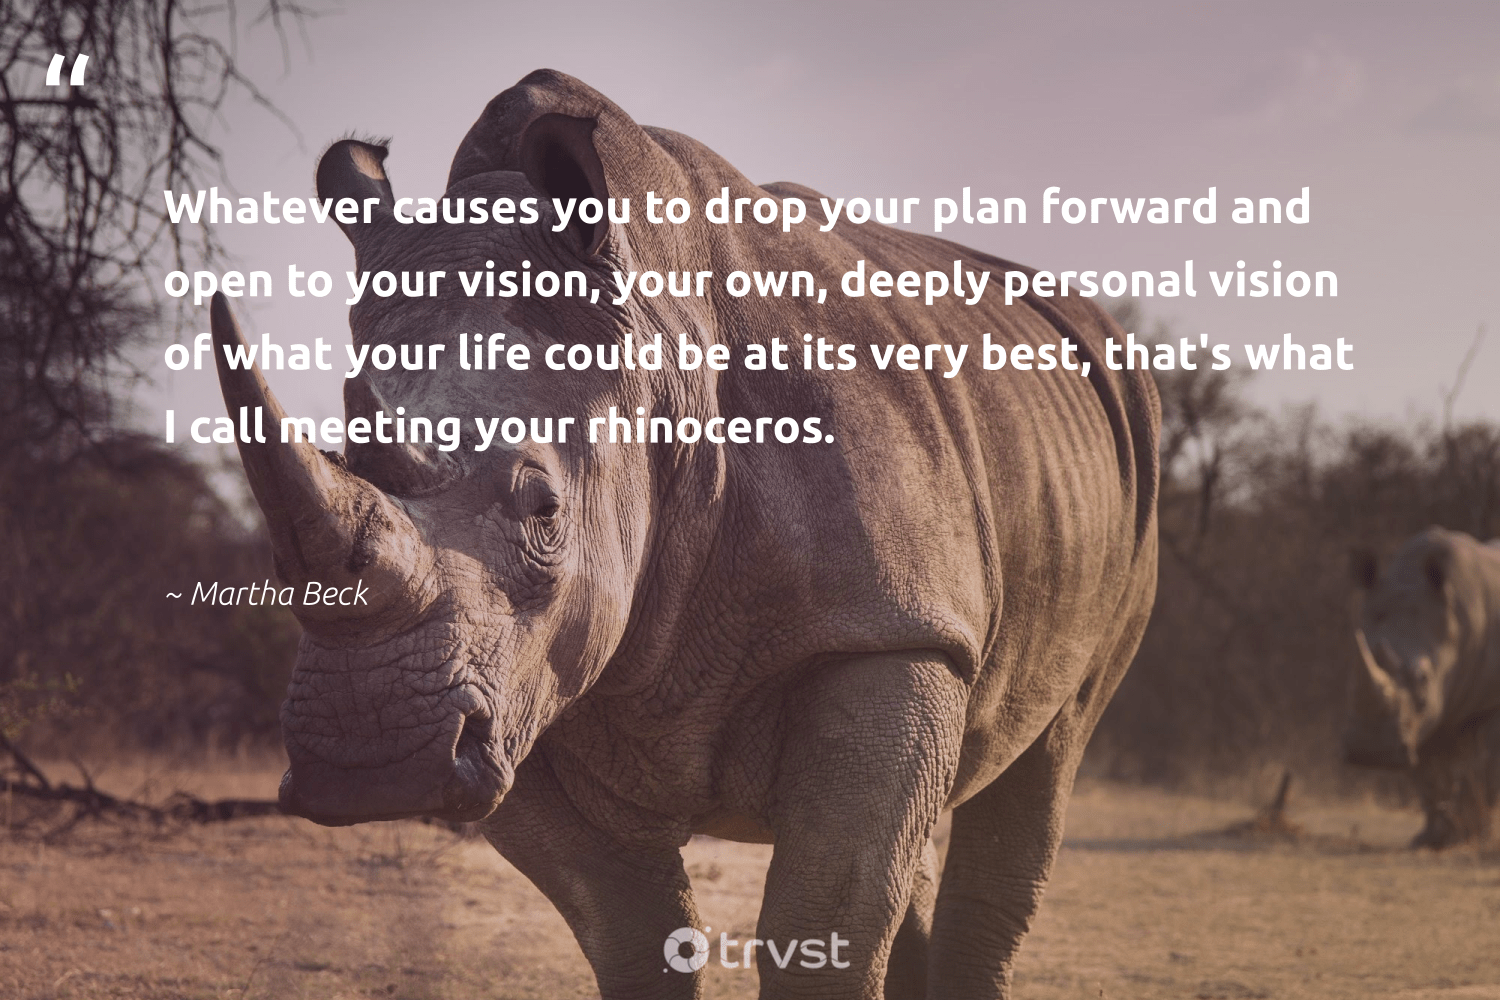 """""""Whatever causes you to drop your plan forward and open to your vision, your own, deeply personal vision of what your life could be at its very best, that's what I call meeting your rhinoceros.""""  - Martha Beck #trvst #quotes #causes #rhinoceros #life #NGO #perfectnature #communities #changetheworld #Charity #biodiversity #society"""